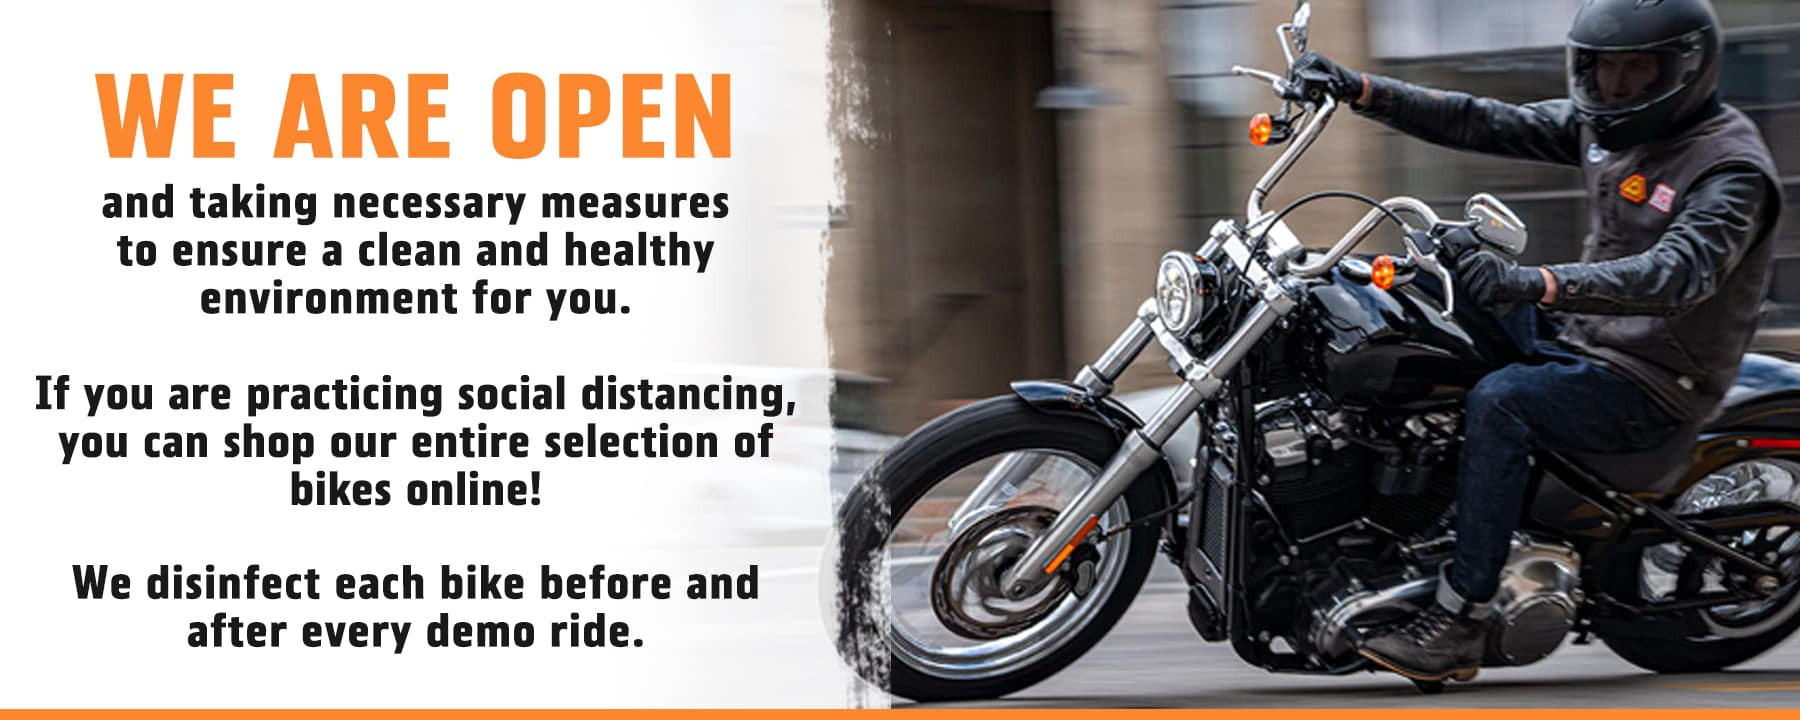 We are open at Lakeland Harley Davidson